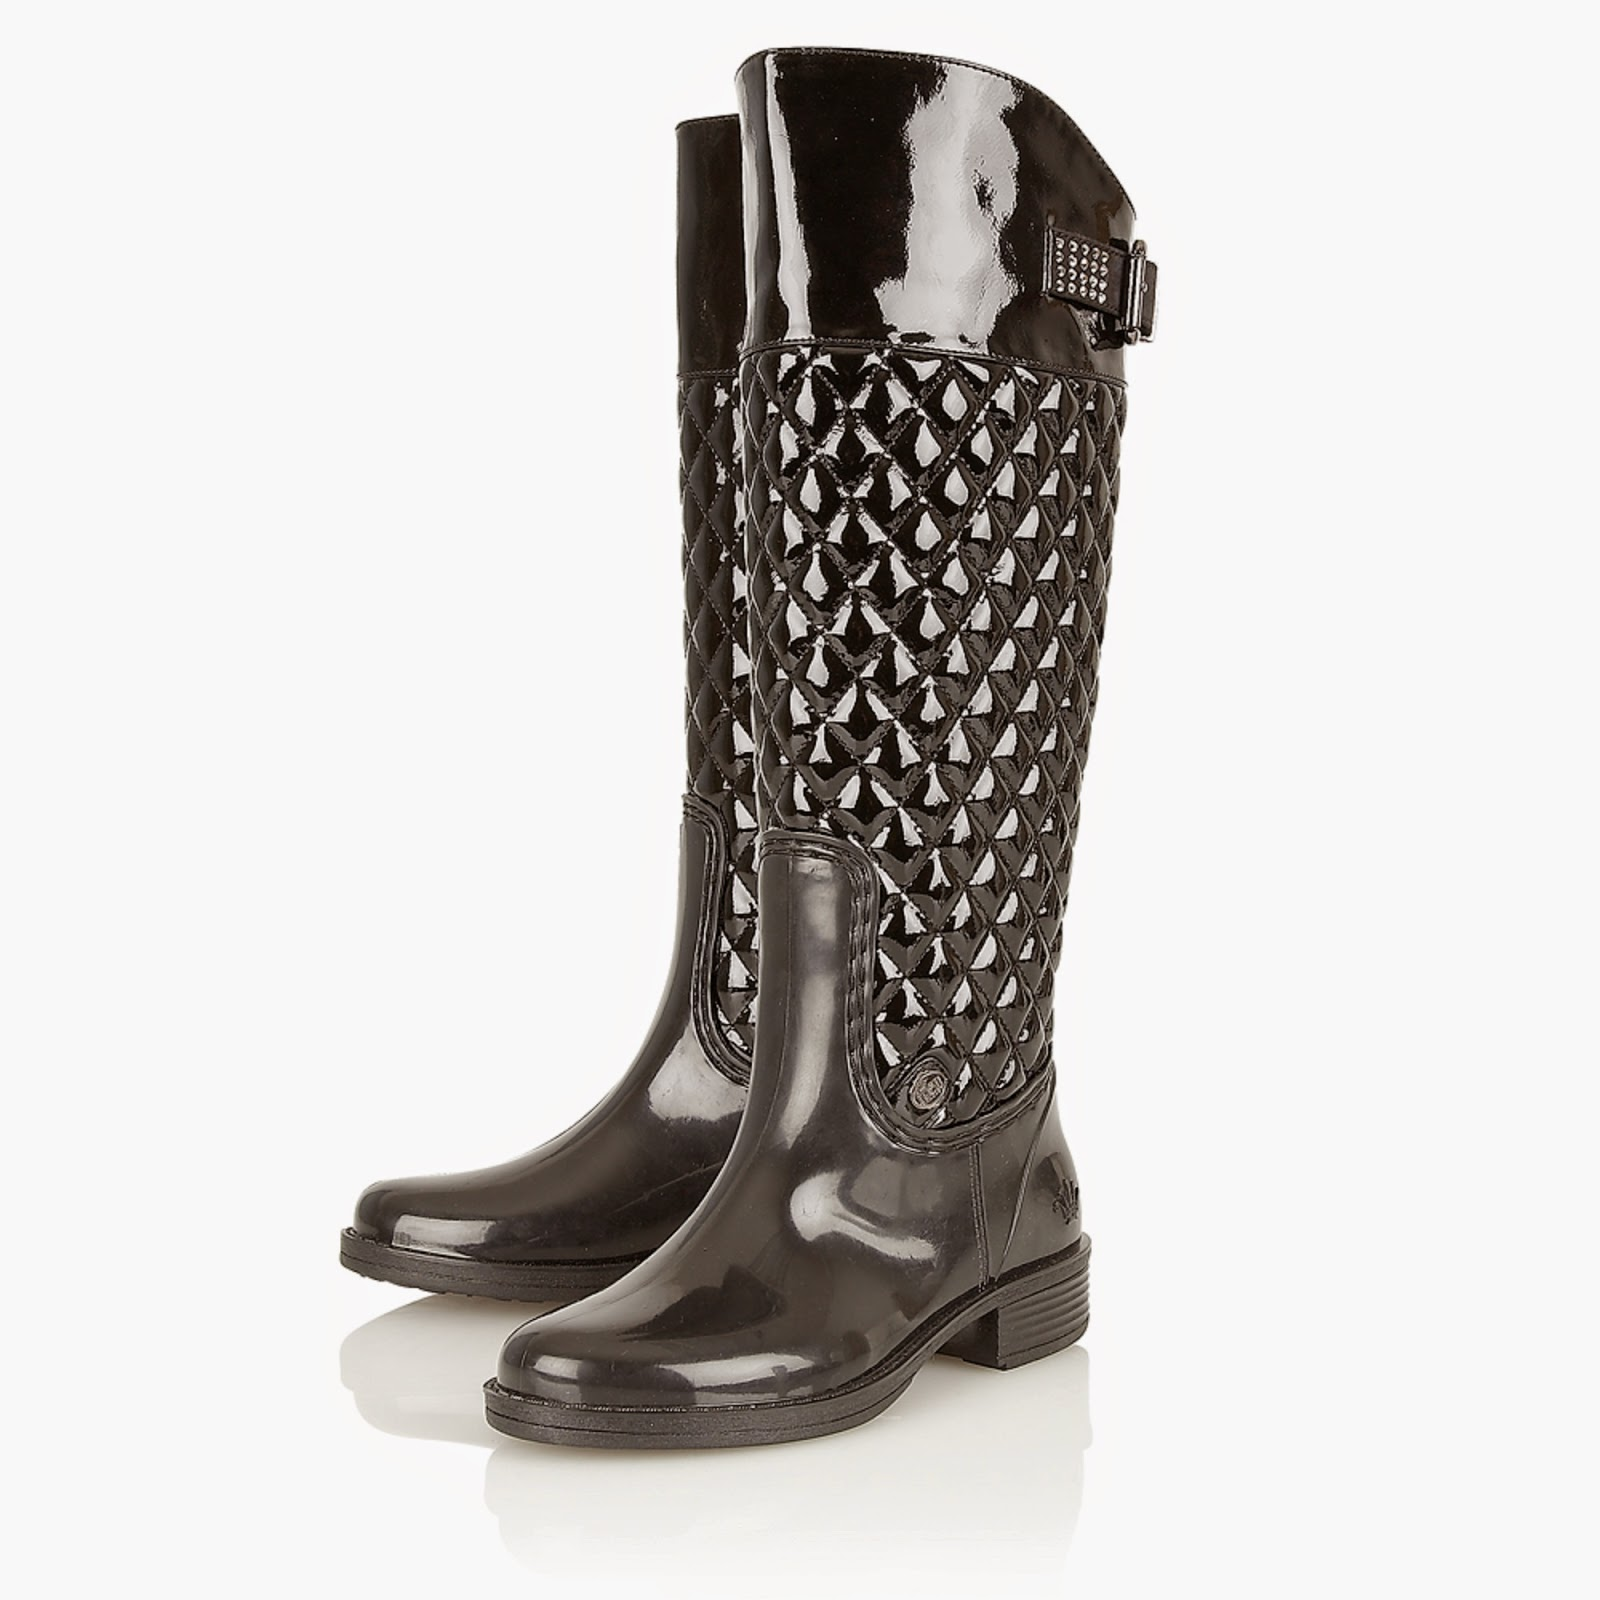 2d861ef8d06 Repel the Rain: Posh Wellies Rohan Black Patent Quilted Knee-High Boots  Highly Recommended by Whom You Know-Keep Your Feet Dry For the Gala You Go  To!